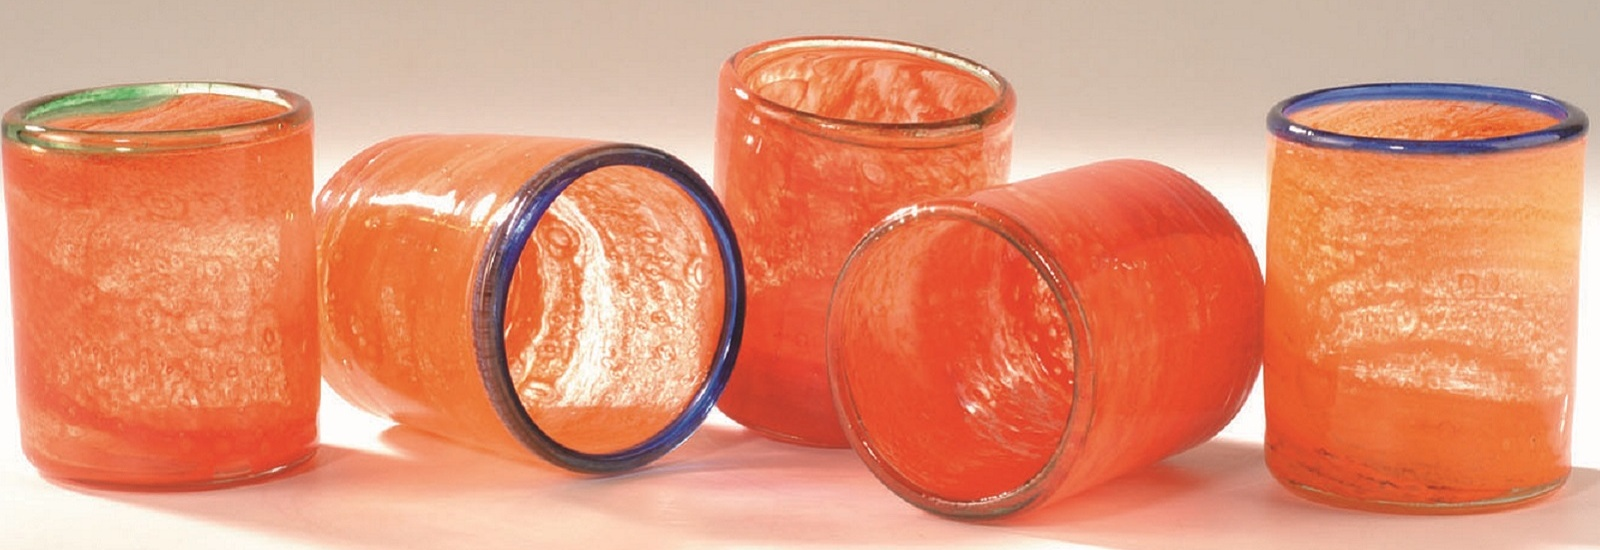 Orange Crystal glasses